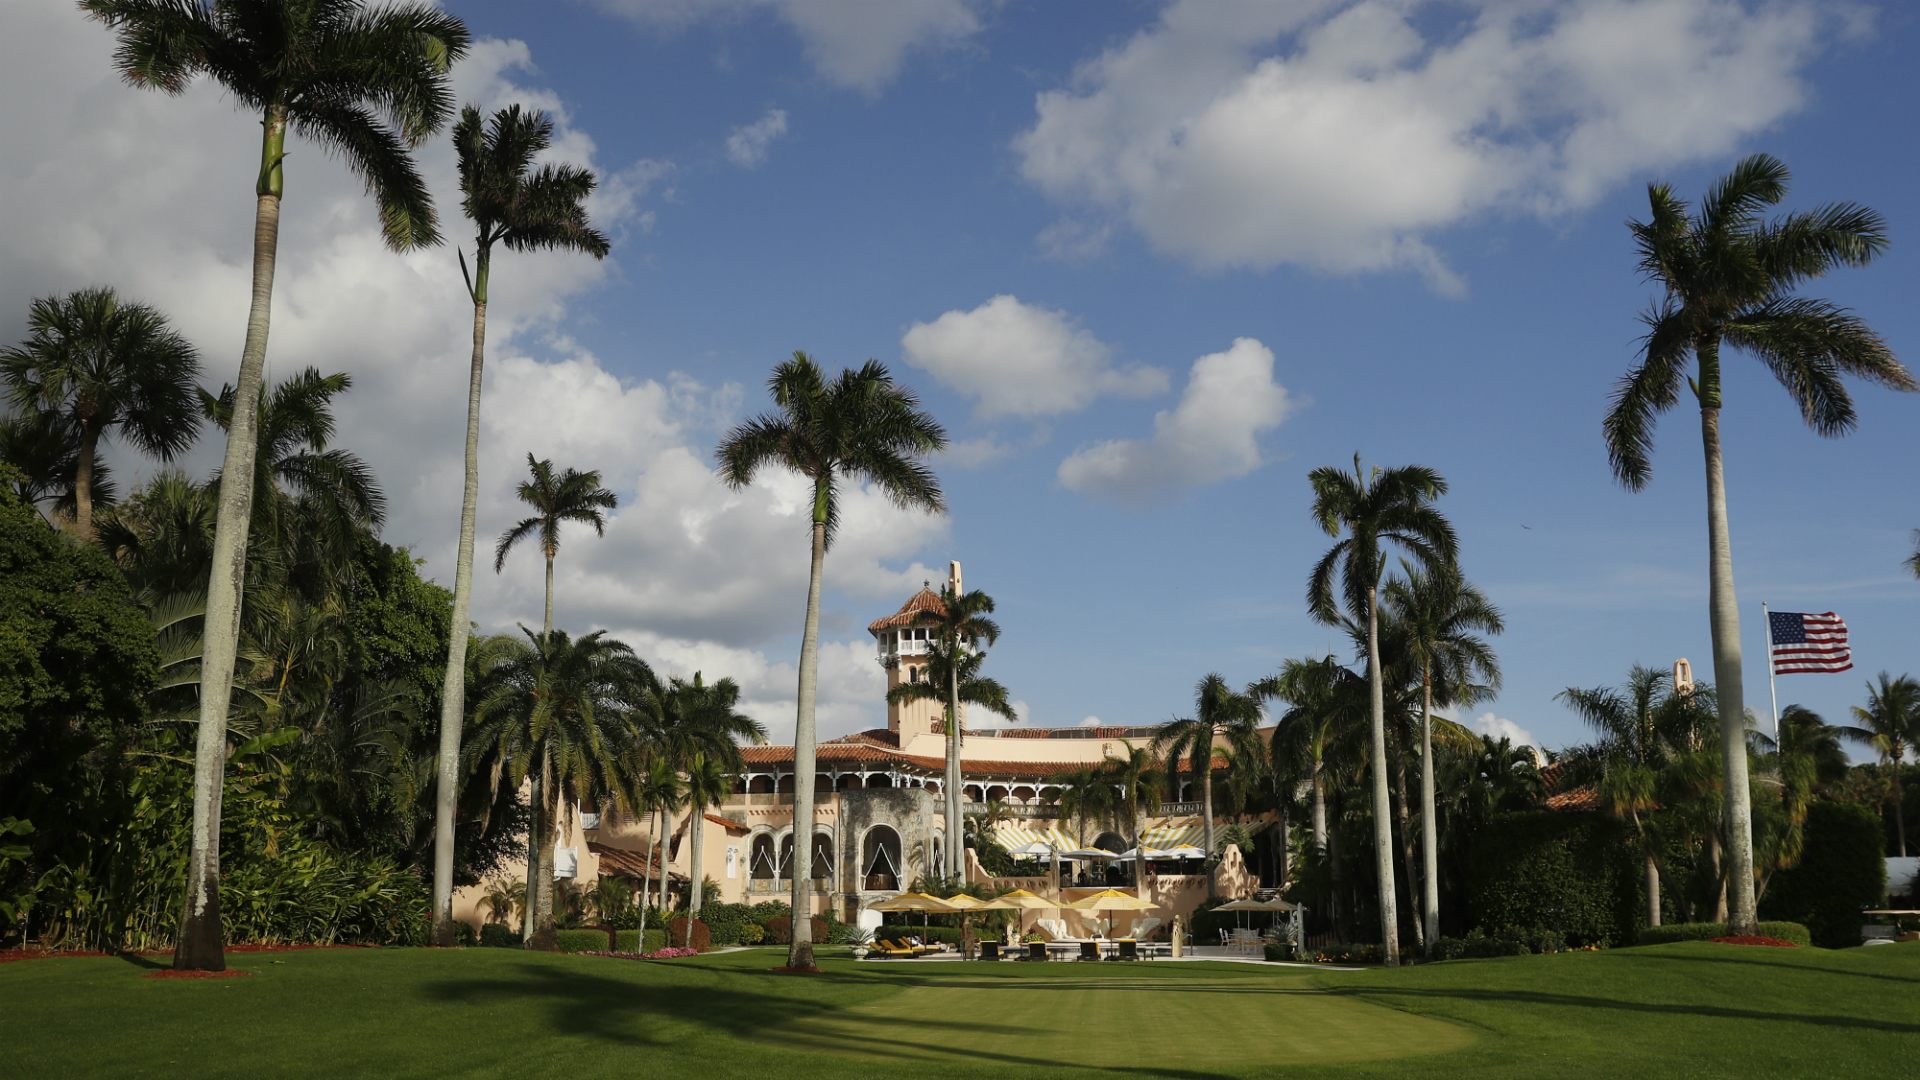 Revenue at Trump's Mar-a-Lago dropped 10 percent in 2018, new federal disclosures show, part of a mixed overall picture of the president's finances